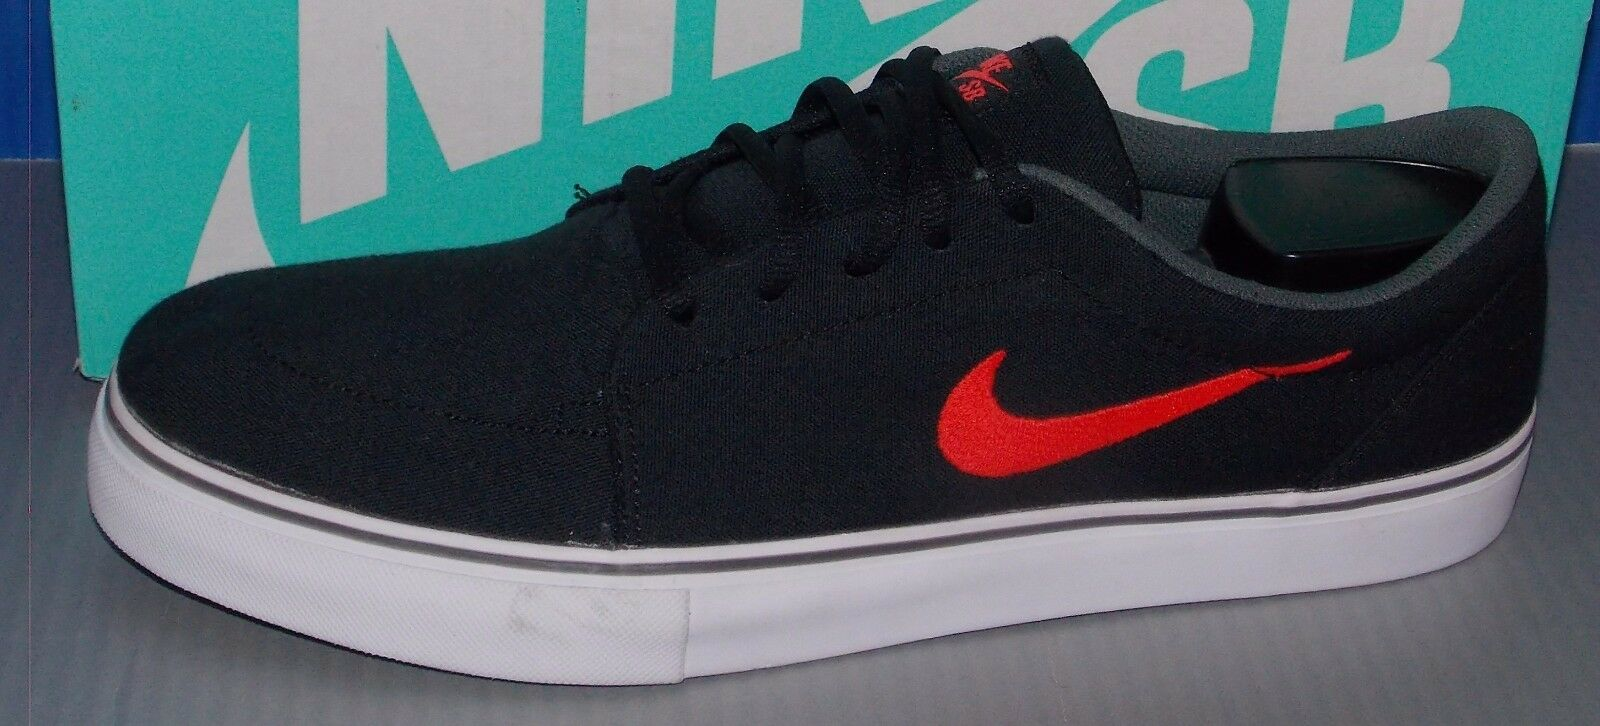 MENS NIKE SATIRE CANVAS IN COLORS BLACK / GREY SIZE 12 Brand discount